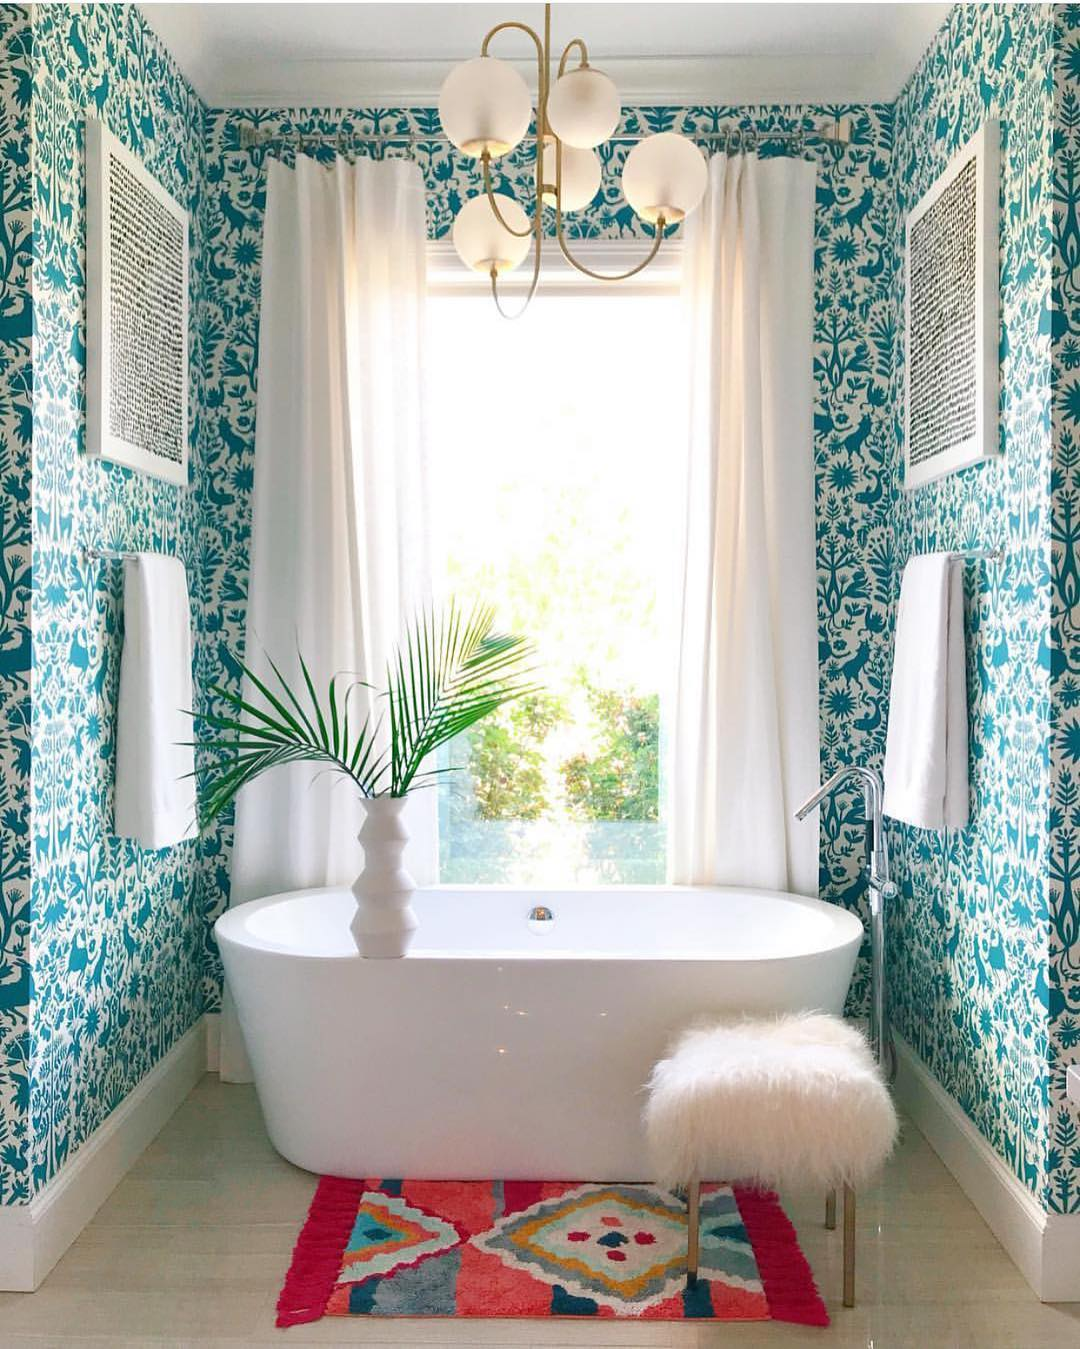 Otomi Turquoise wallpaper | Emily Isabella | Favorite Full Bathrooms Roundup | Hygge & West